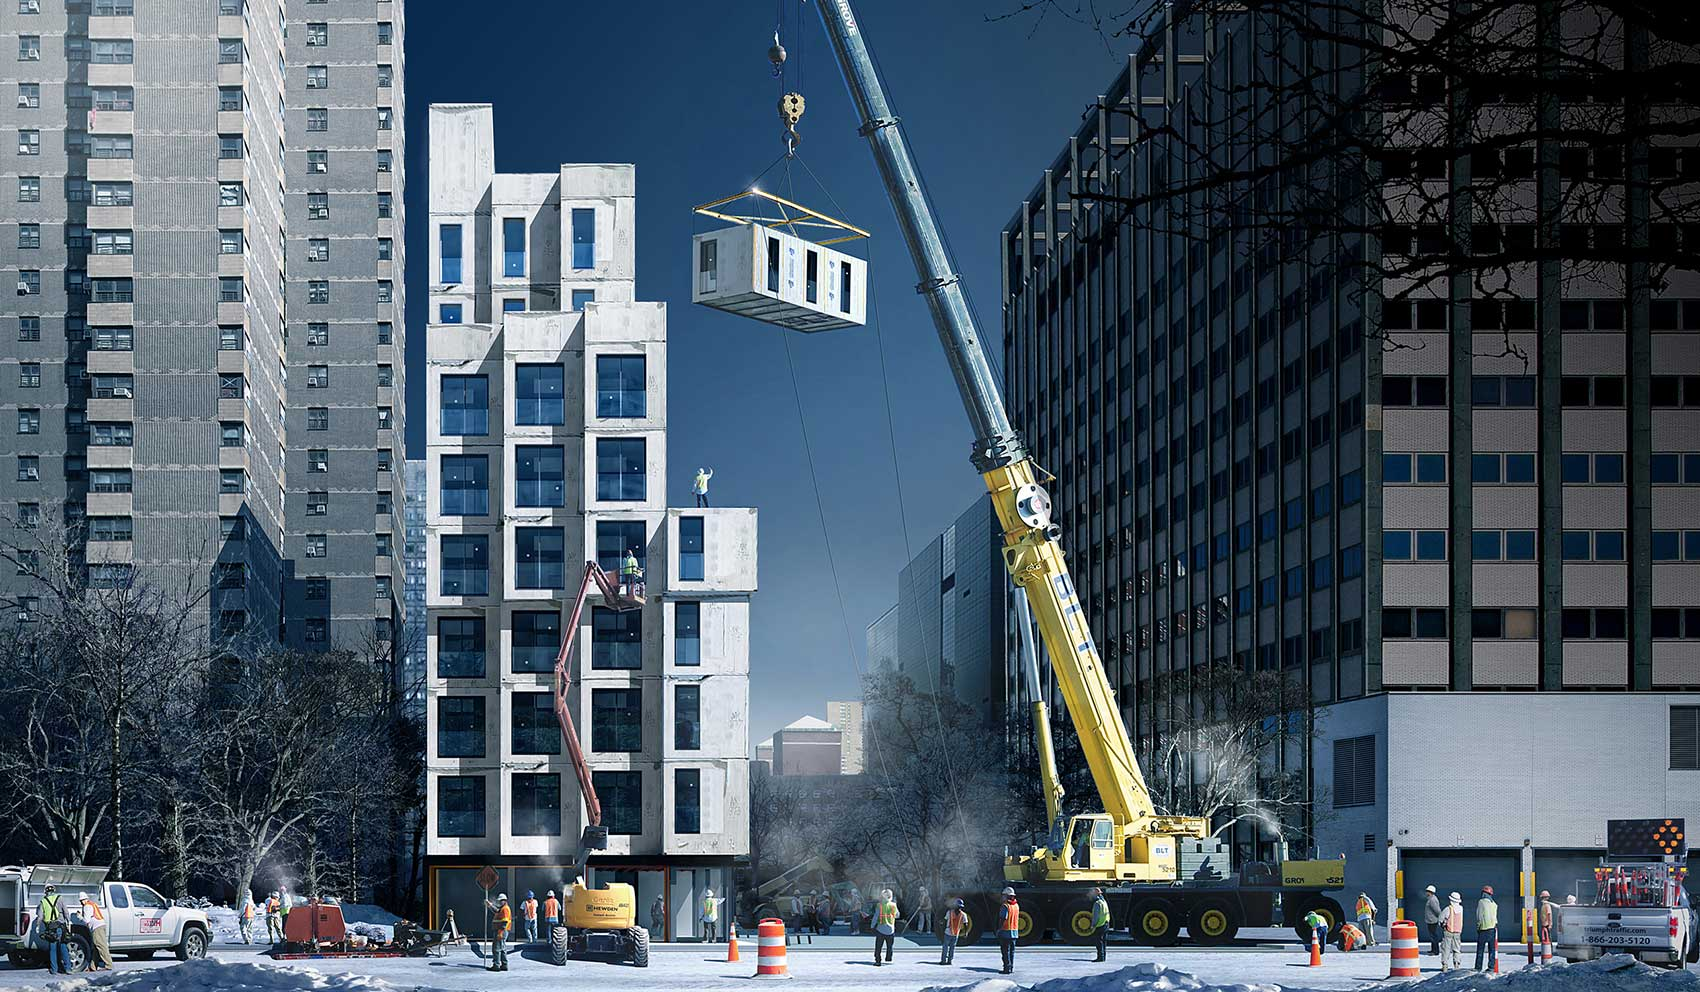 nA_ADAPT_Winter-Construction_Copyright-MIR_cropped-main_1700wide